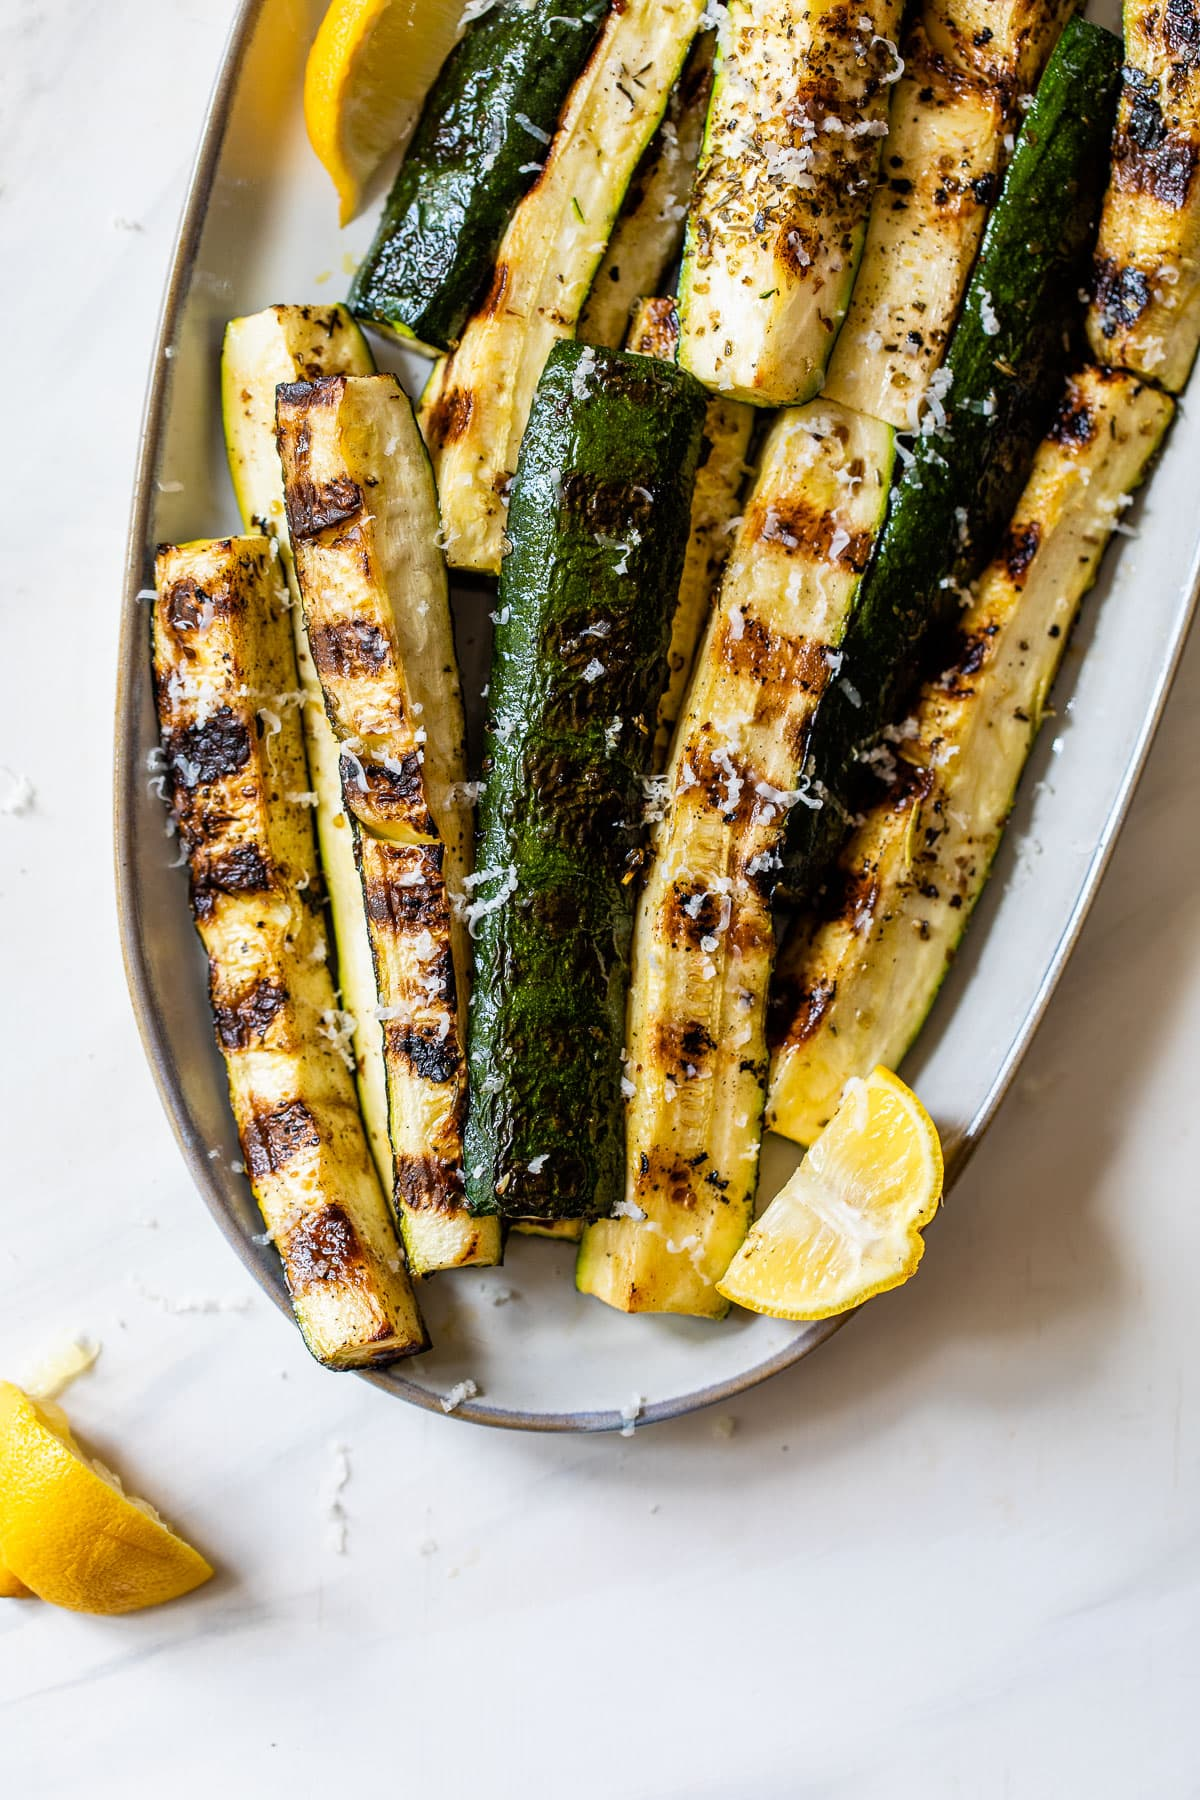 grilled zucchini with Parmesan on a plate